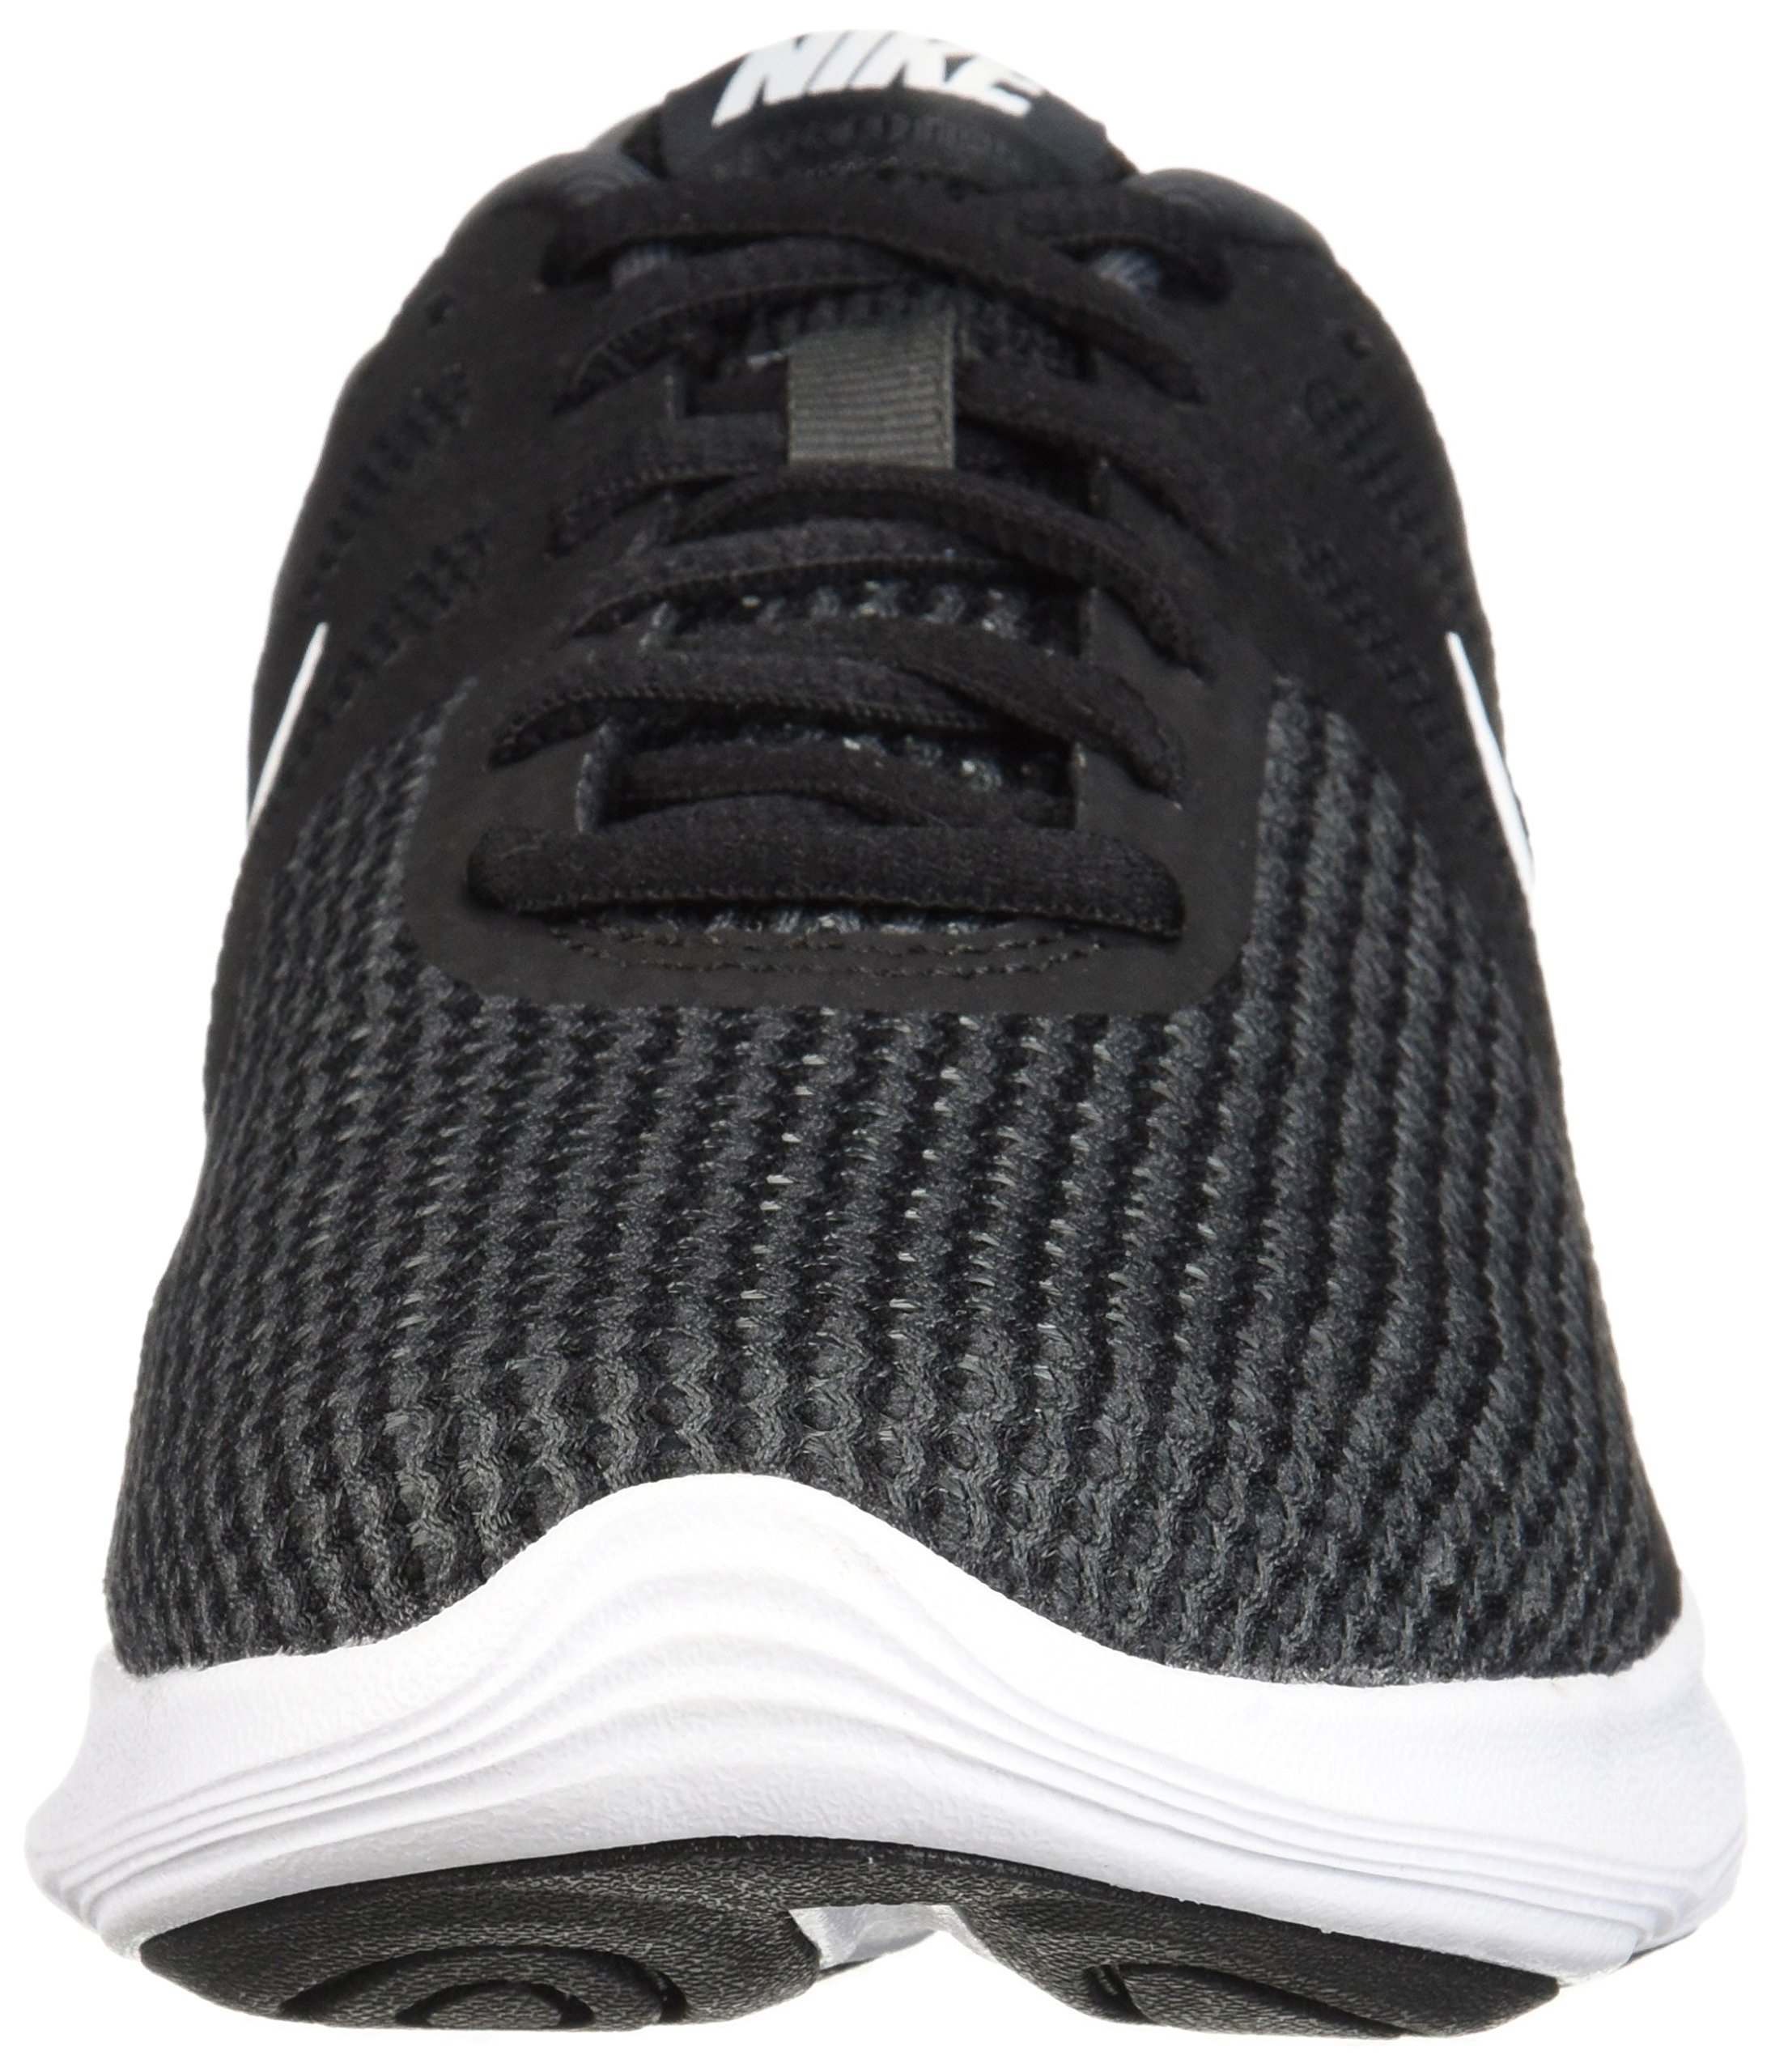 Nike Men's Revolution 4 Running Shoe, Black/White-Anthracite, 6.5 Regular US by Nike (Image #4)